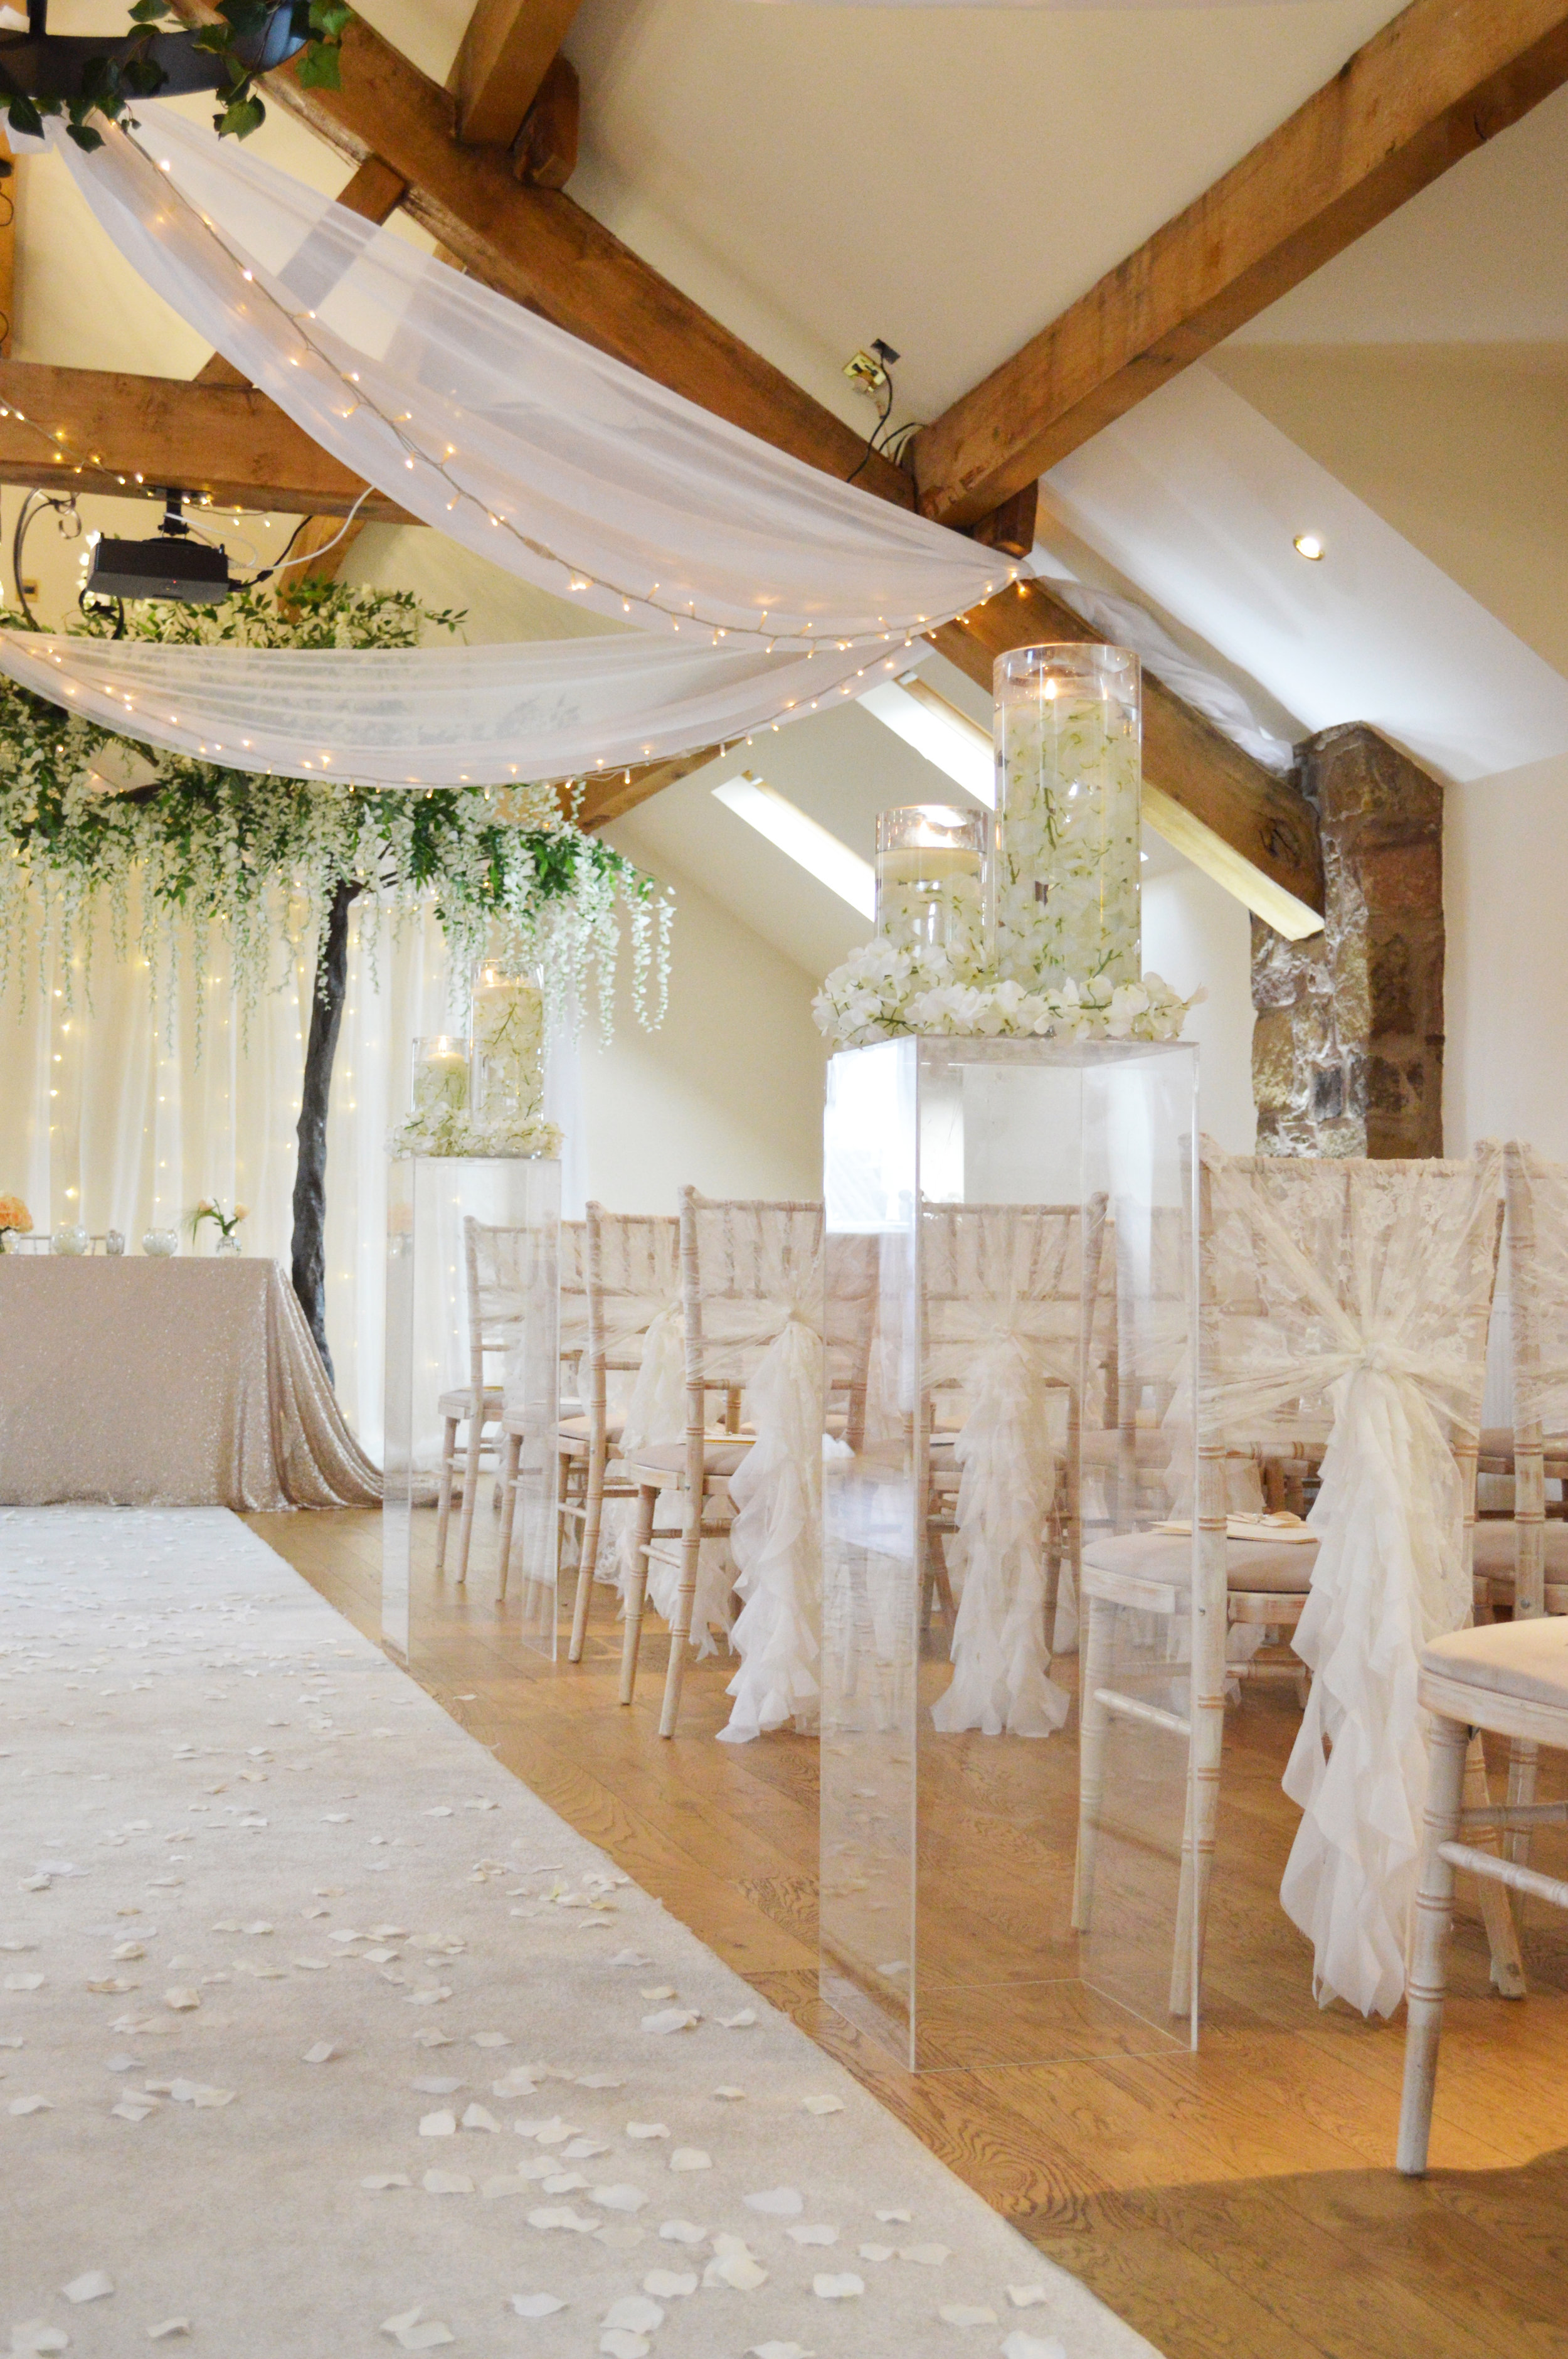 Perspex pillars with floating candles and decor